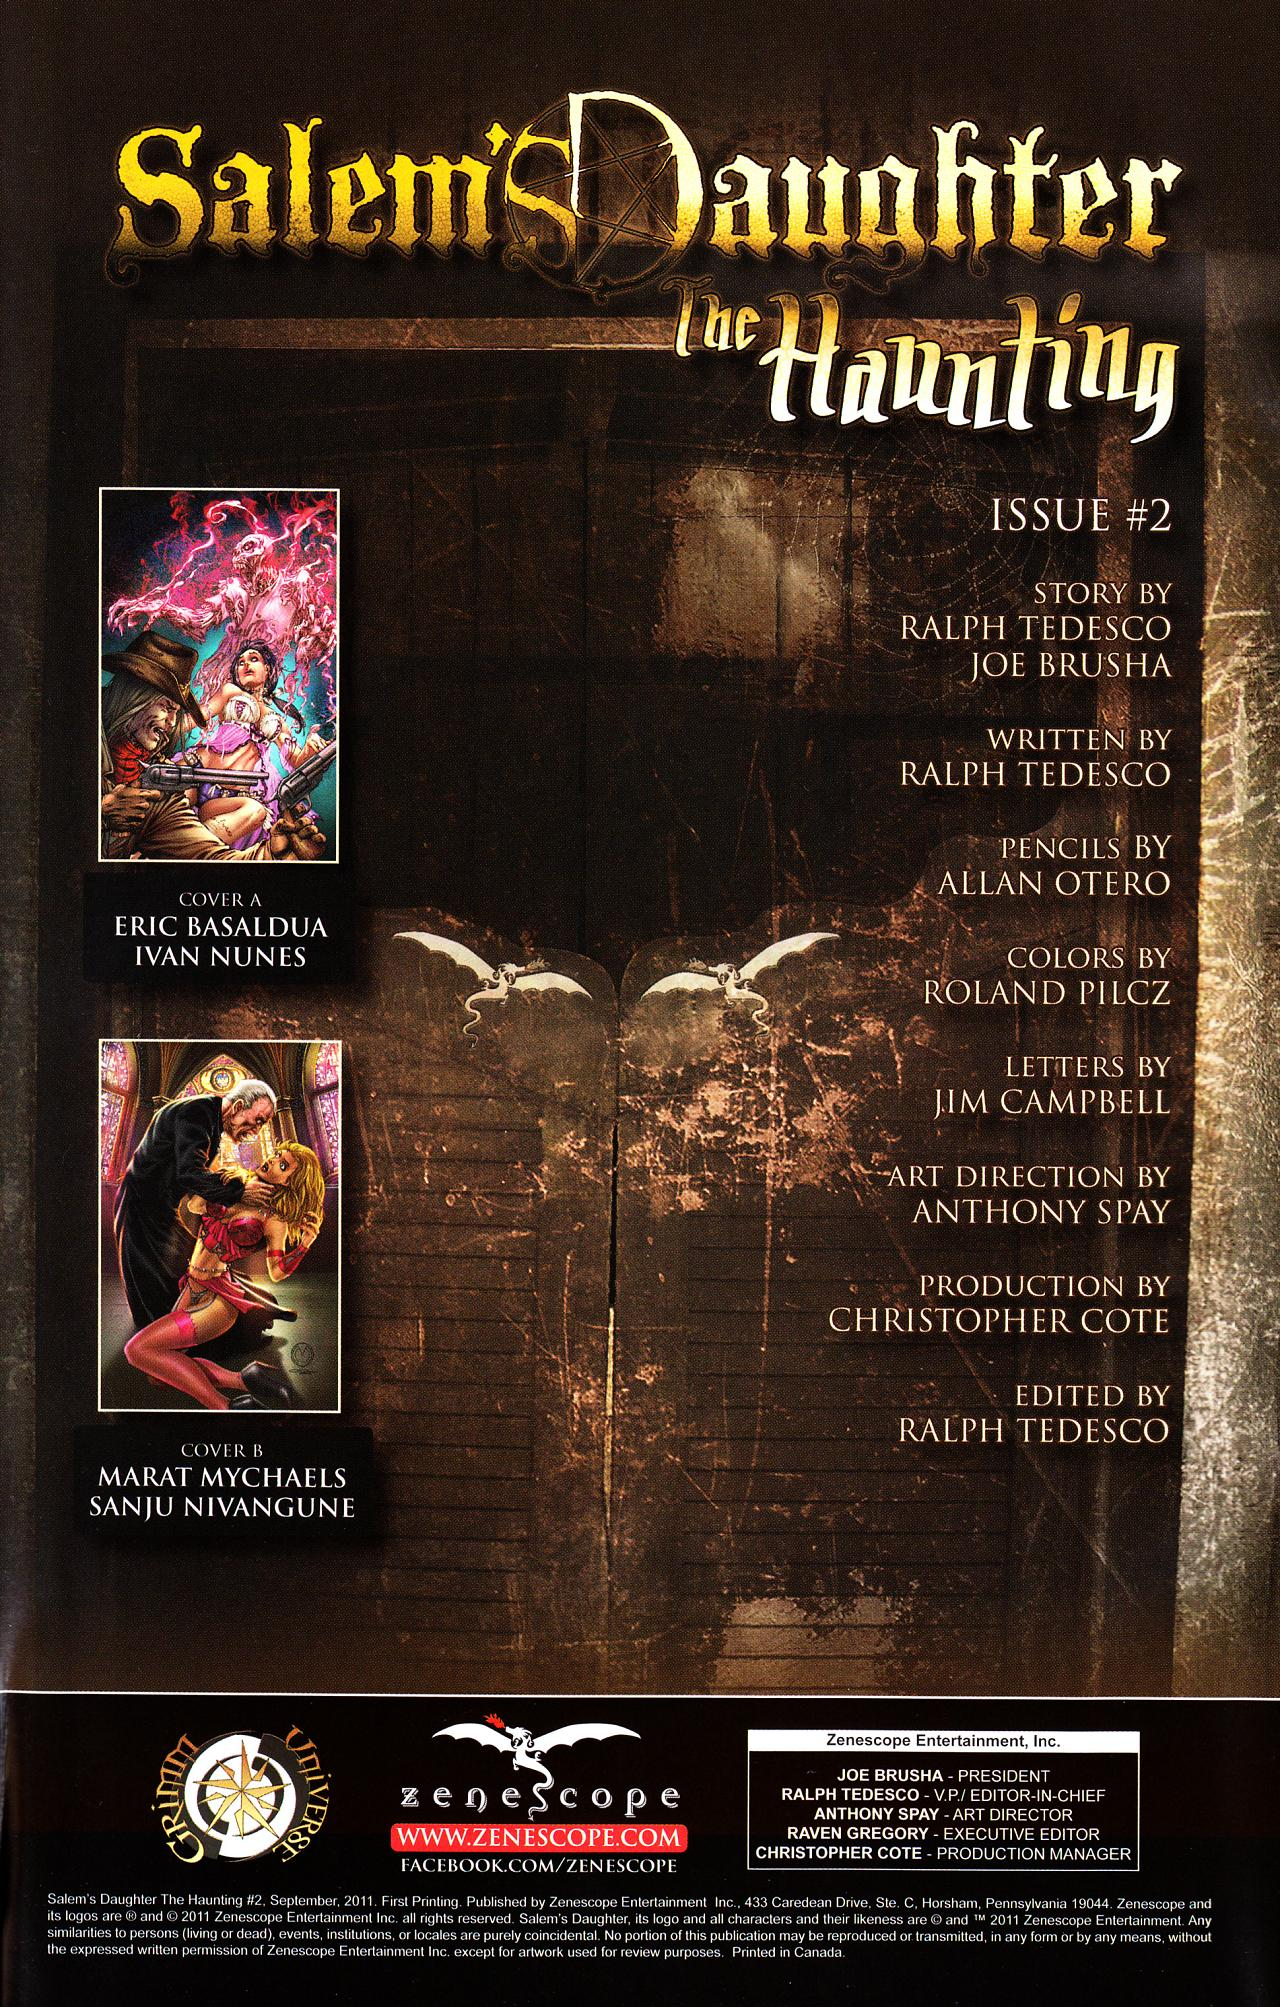 Read online Salem's Daughter: The Haunting comic -  Issue #2 - 3